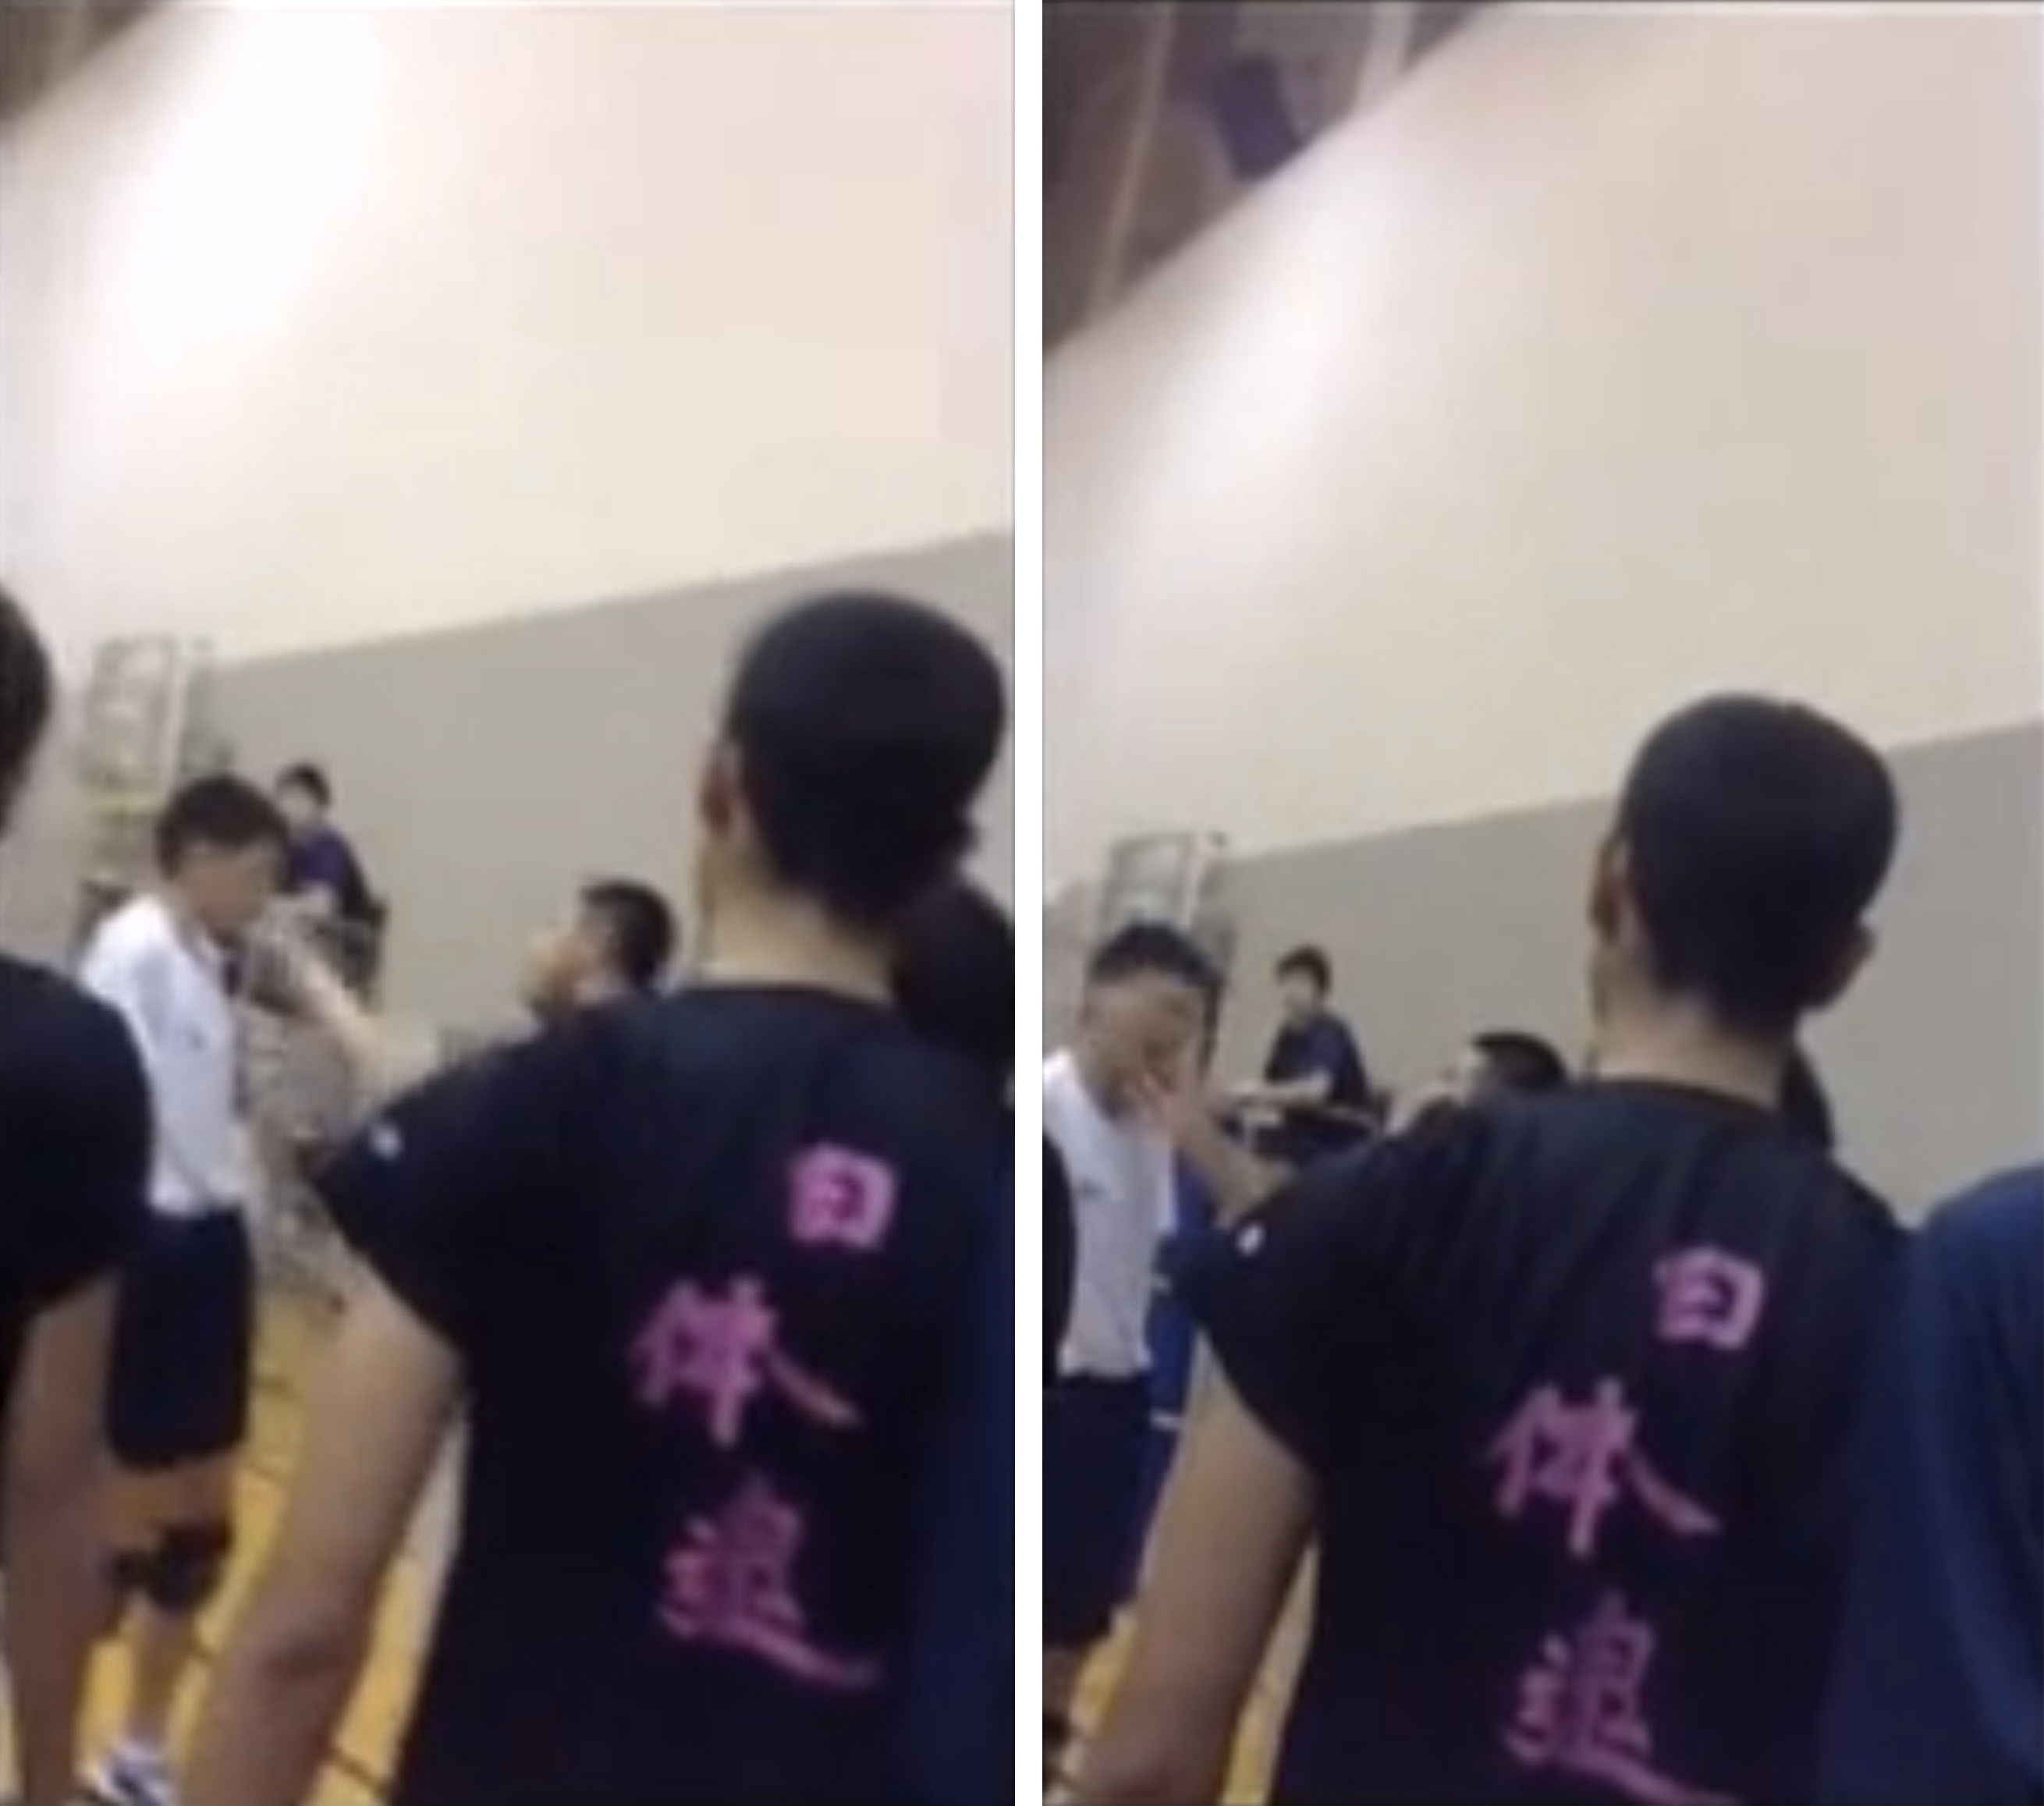 New Viral Videos 2013: Volleyball Coach Beats Boy; Video Goes Viral